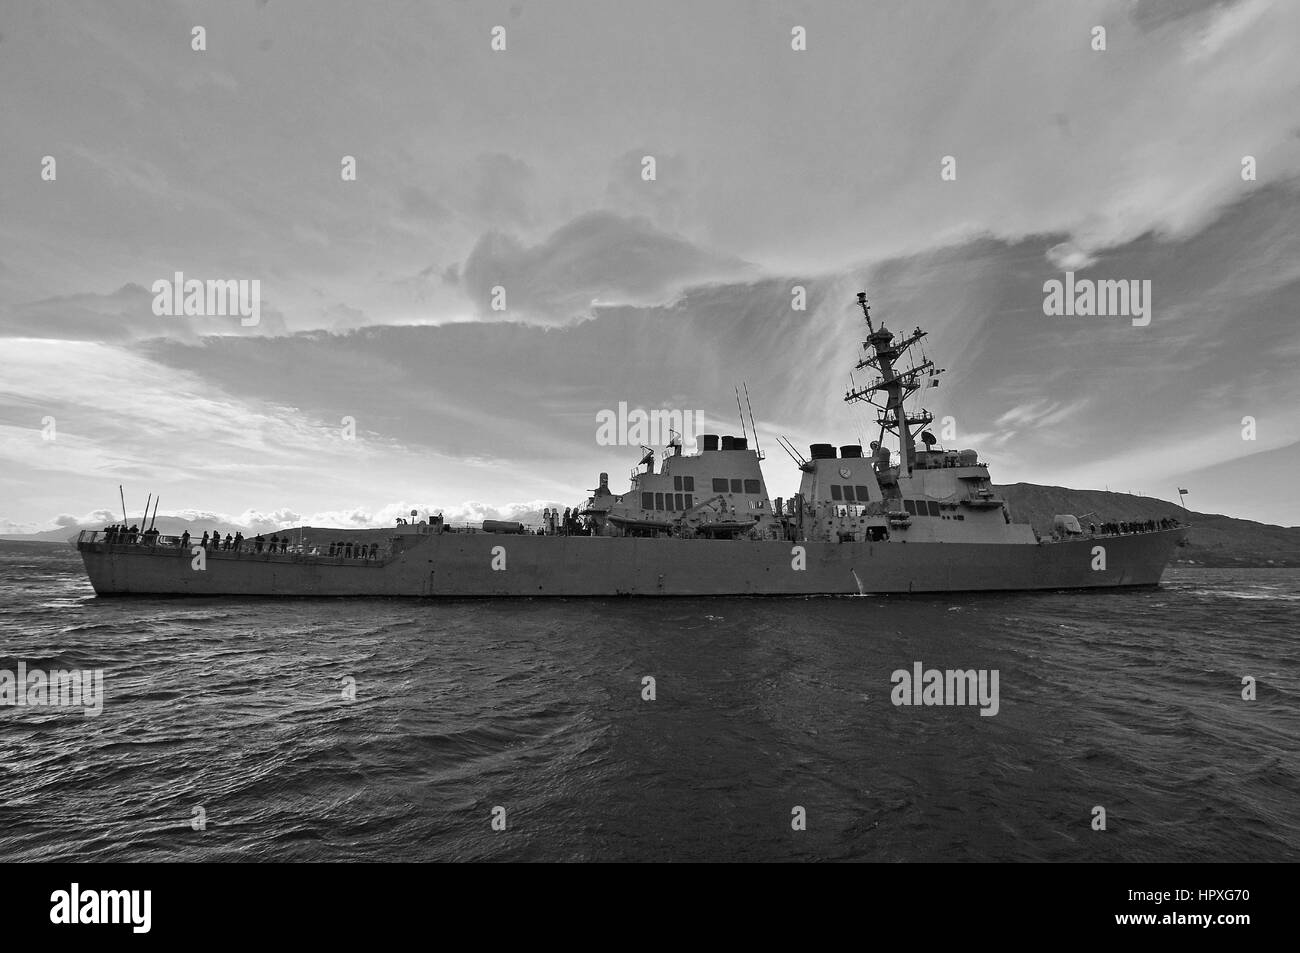 Guided-missile destroyer USS Laboon (DDG 58) departs the Marathi NATO pier facility in Greece following a port visit - Stock Image